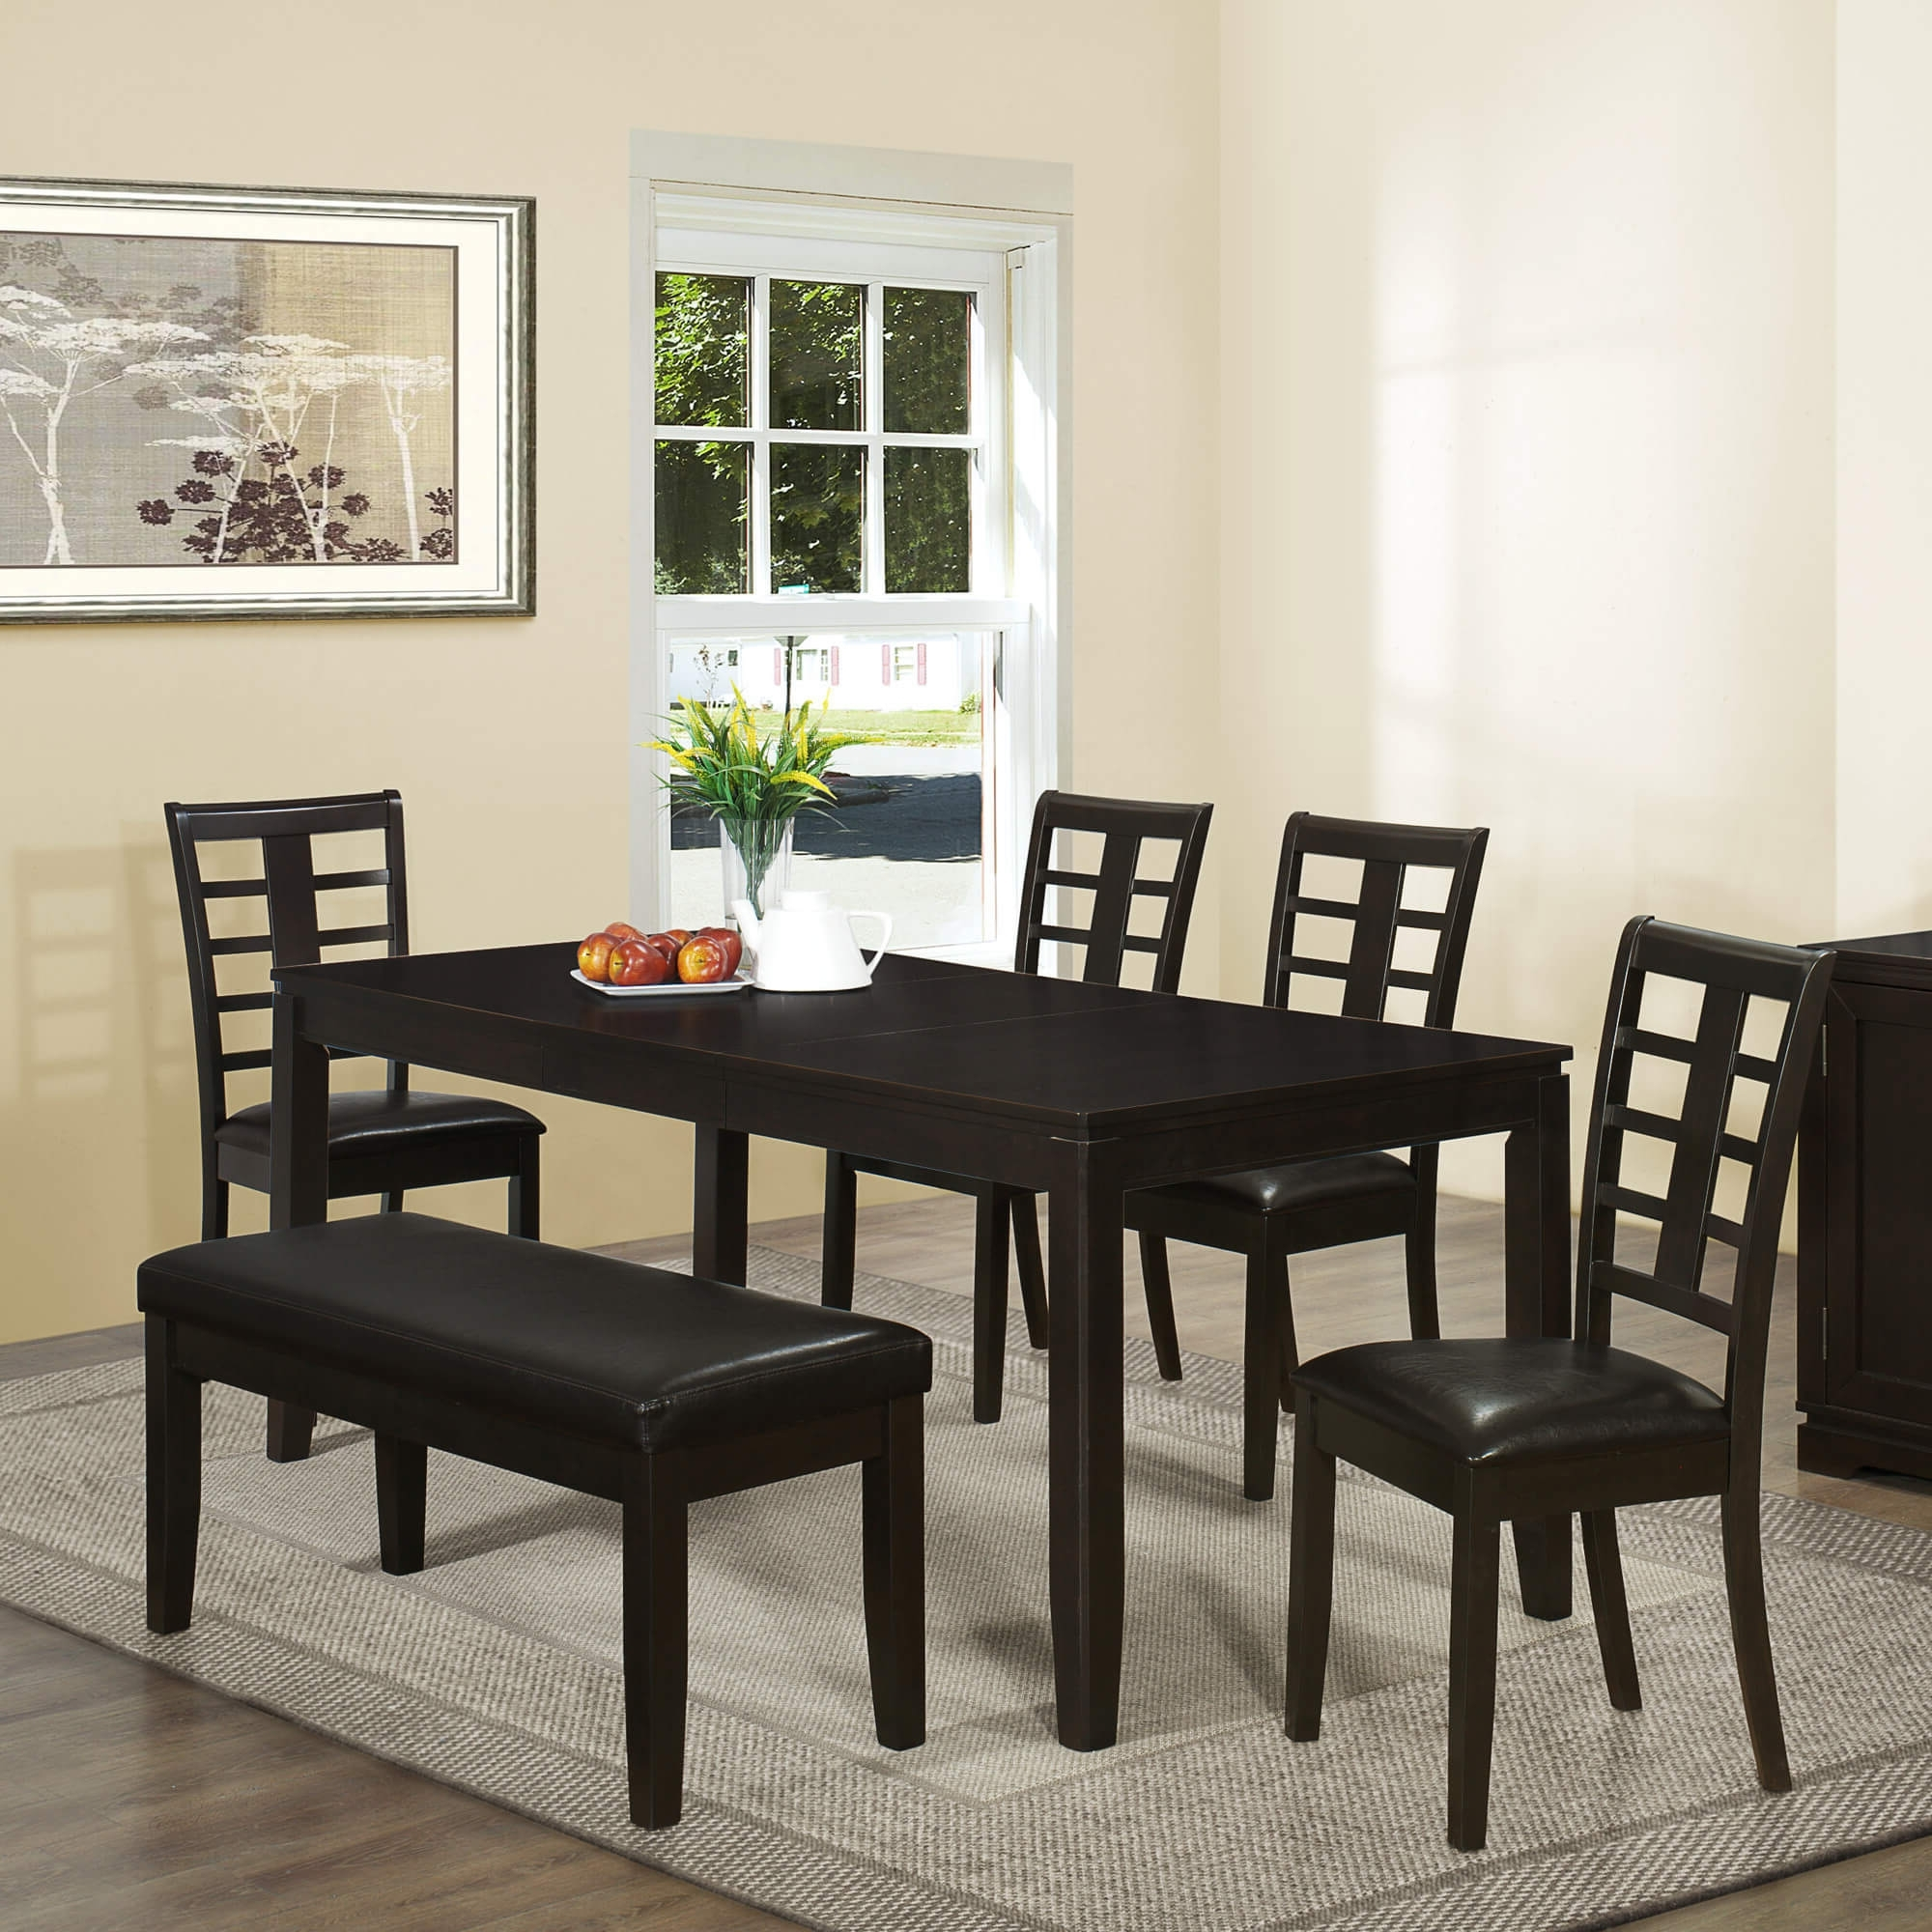 26 Dining Room Sets (Big And Small) With Bench Seating (2018) Pertaining To Well Known Black Wood Dining Tables Sets (View 1 of 25)